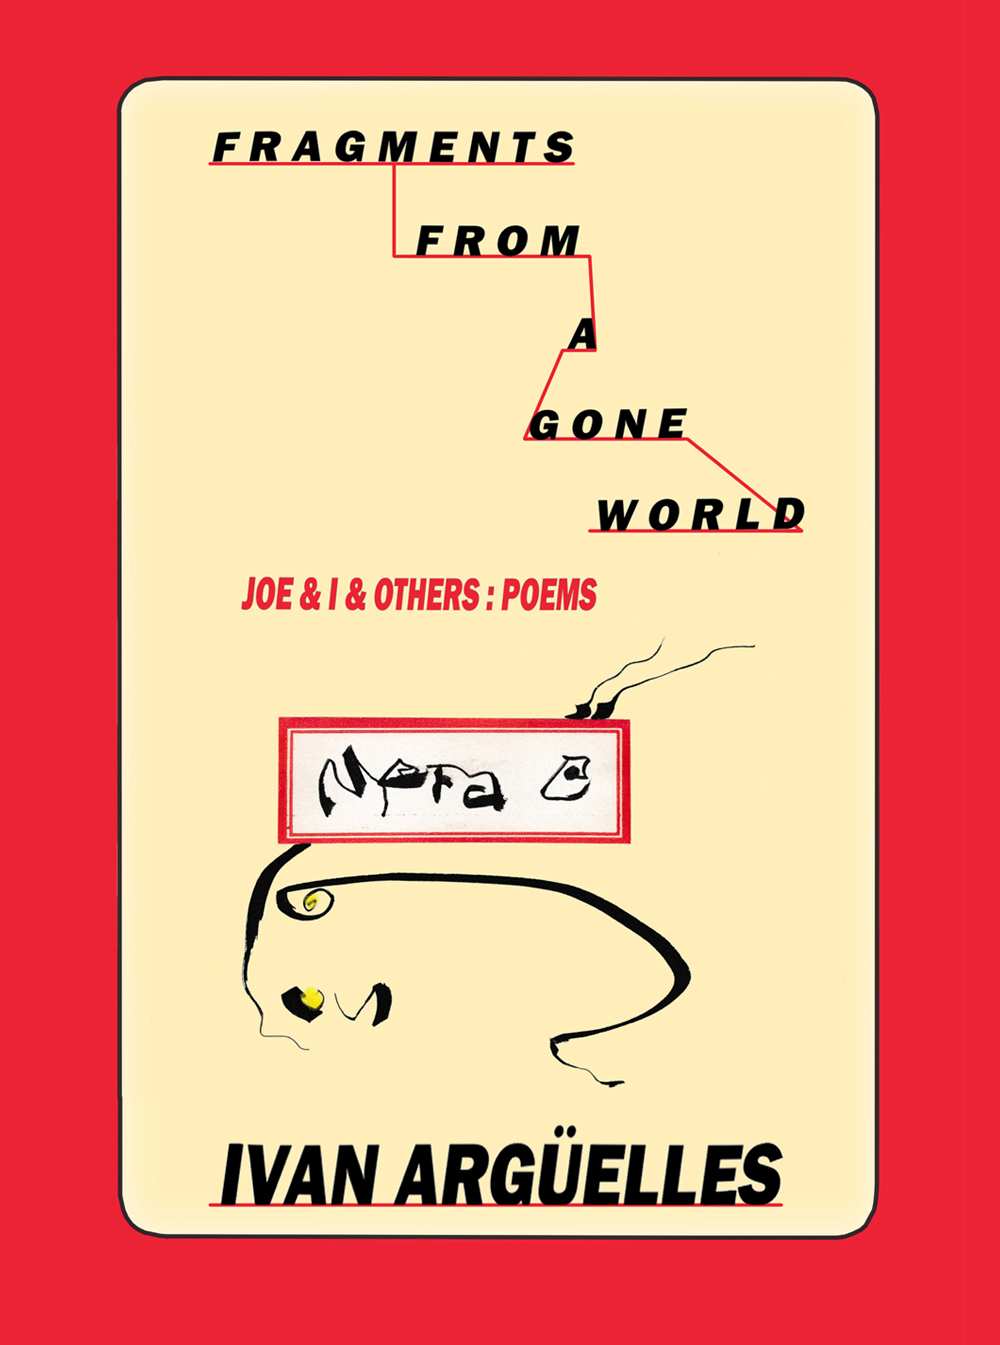 Fragments from a Gone World